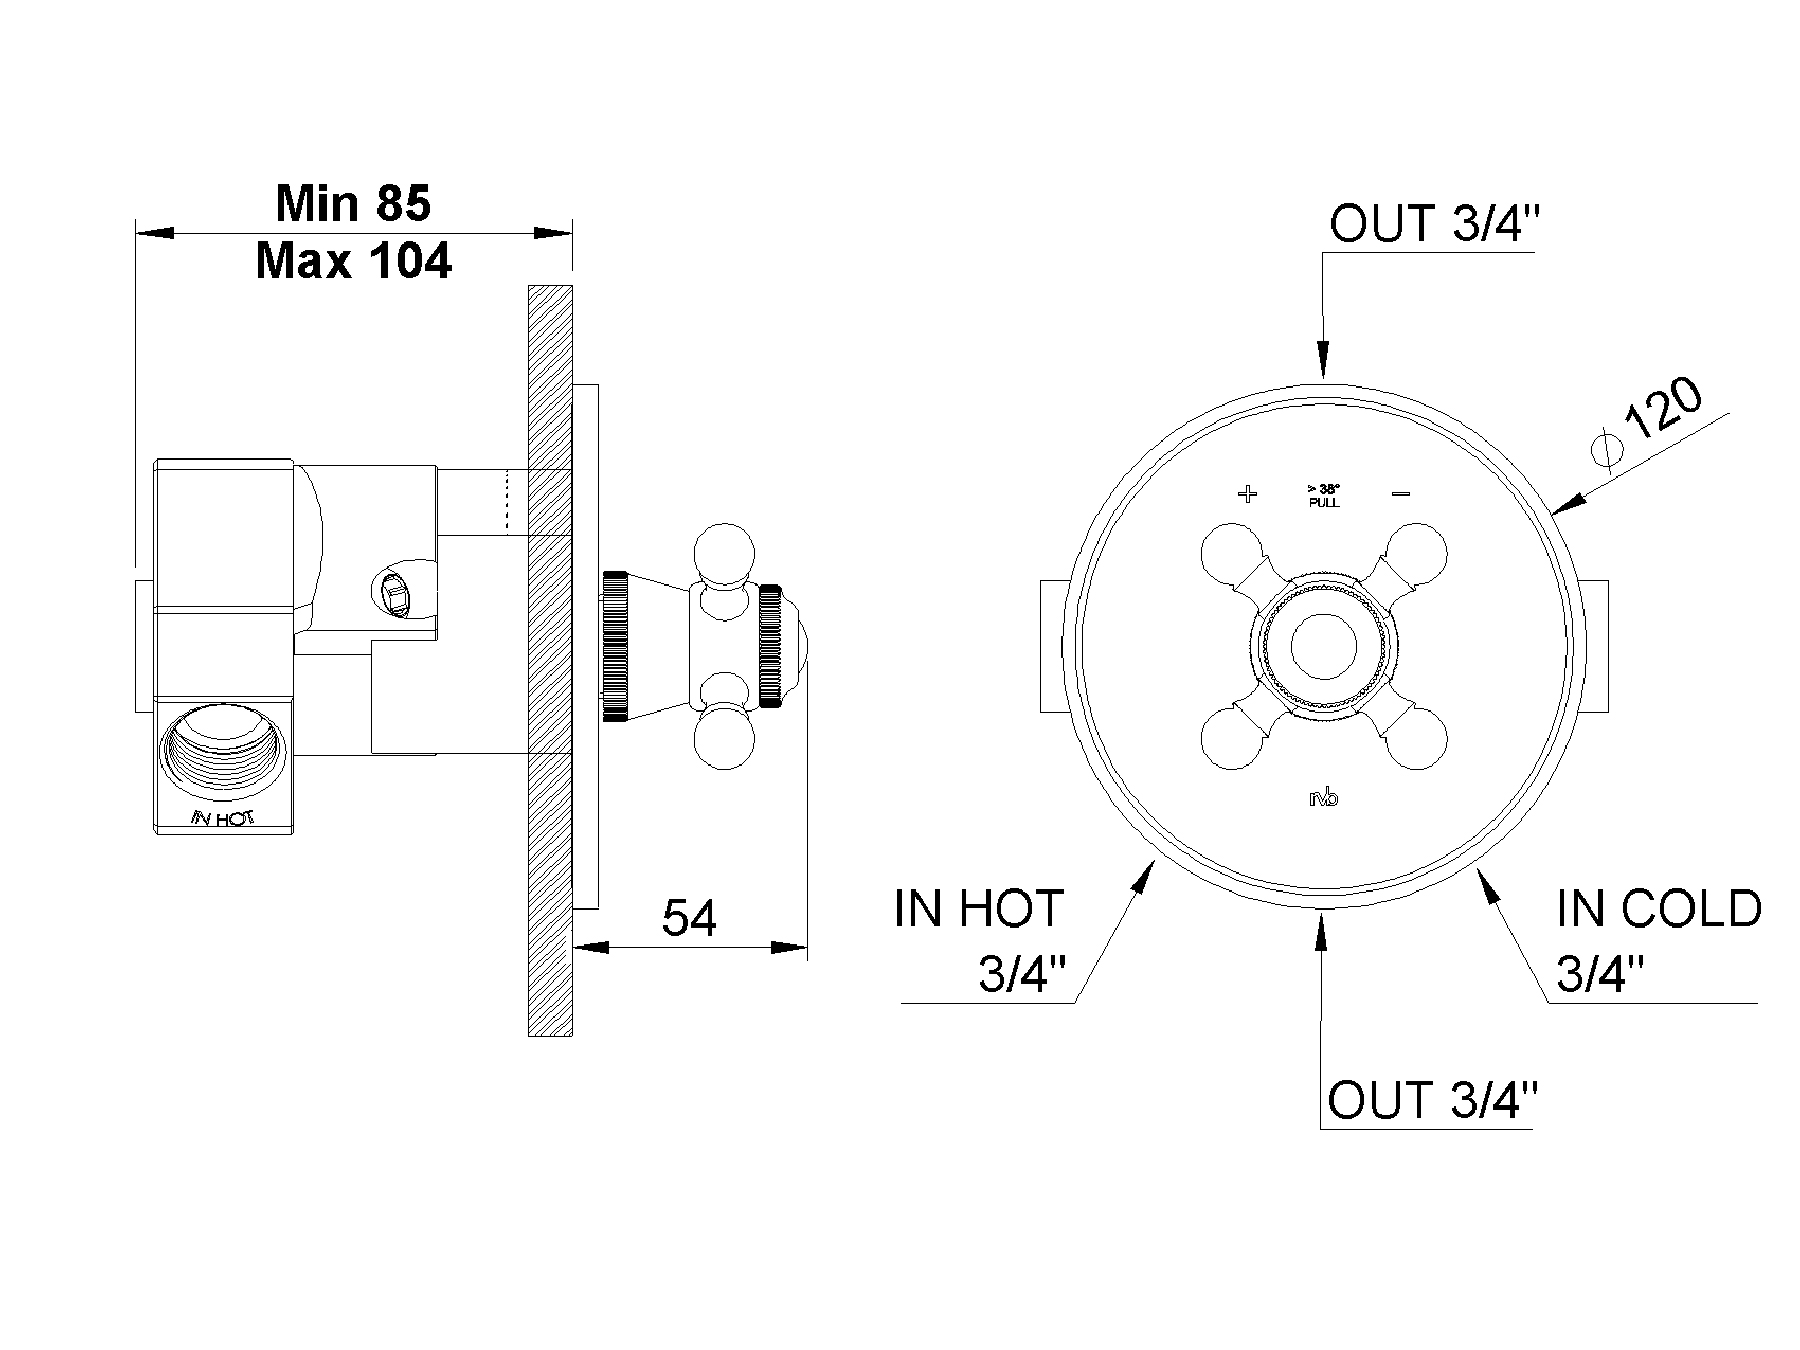 Concealed shower thermostat 1921.--.74